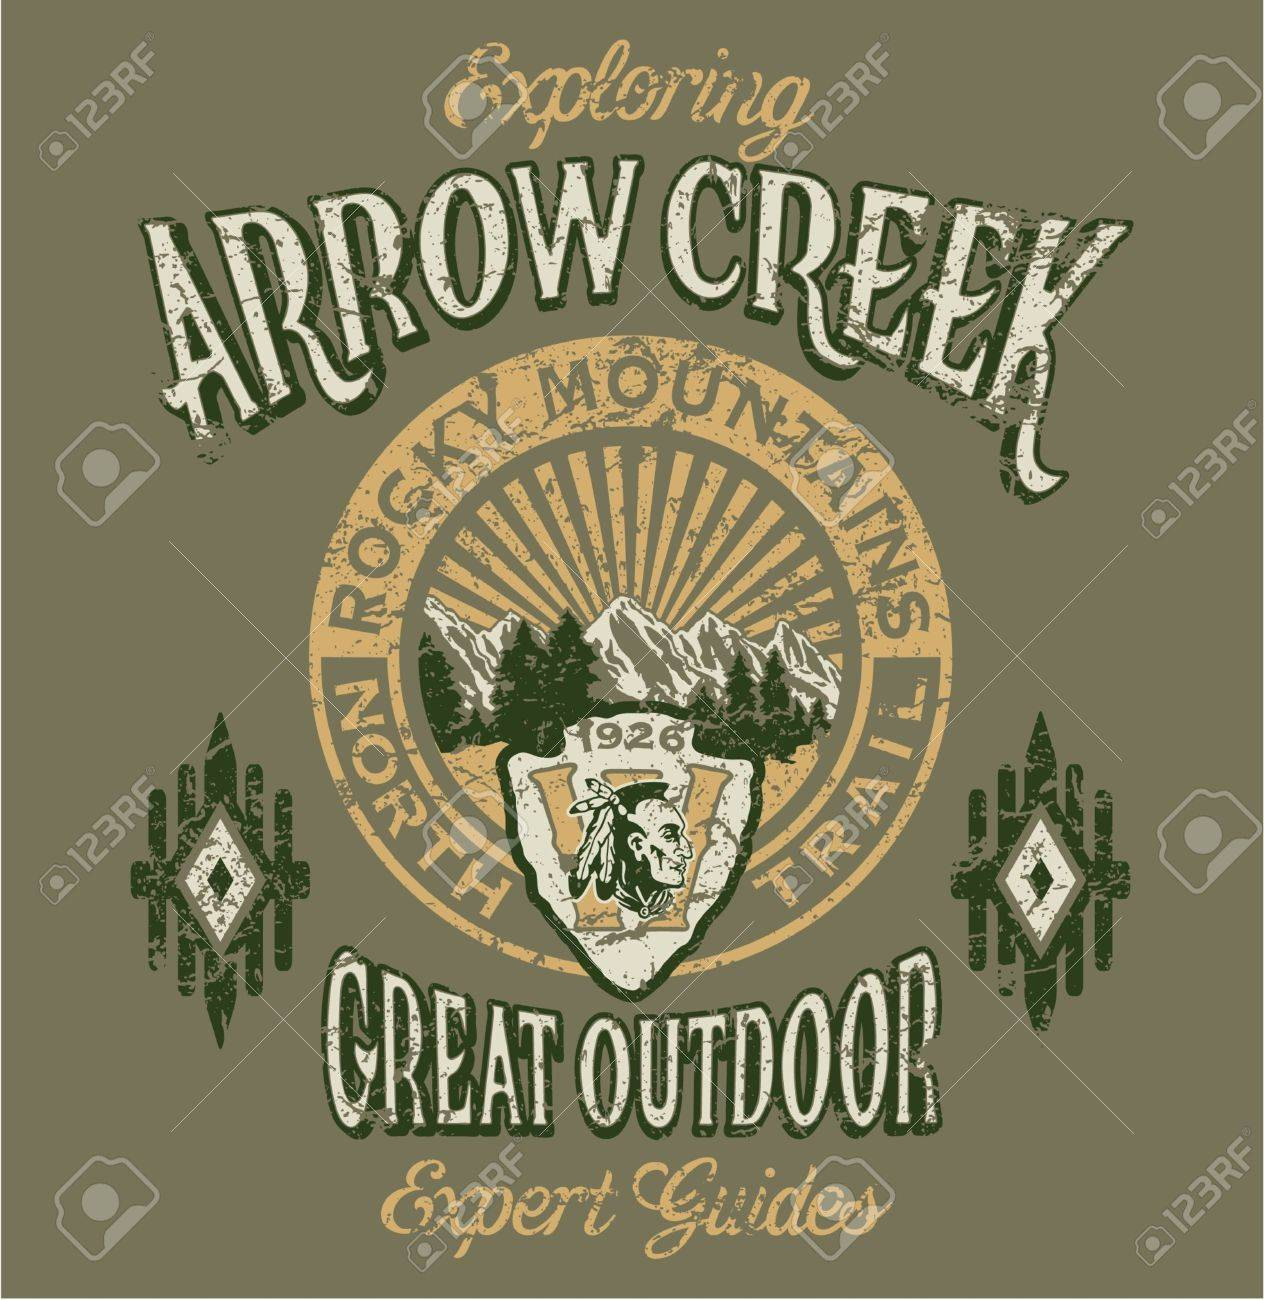 Arrow Creek the great outdoor - Vector artwork for boy sportswear - 3 custom colors - Grunge effect in separate layer Stock Vector - 22020038